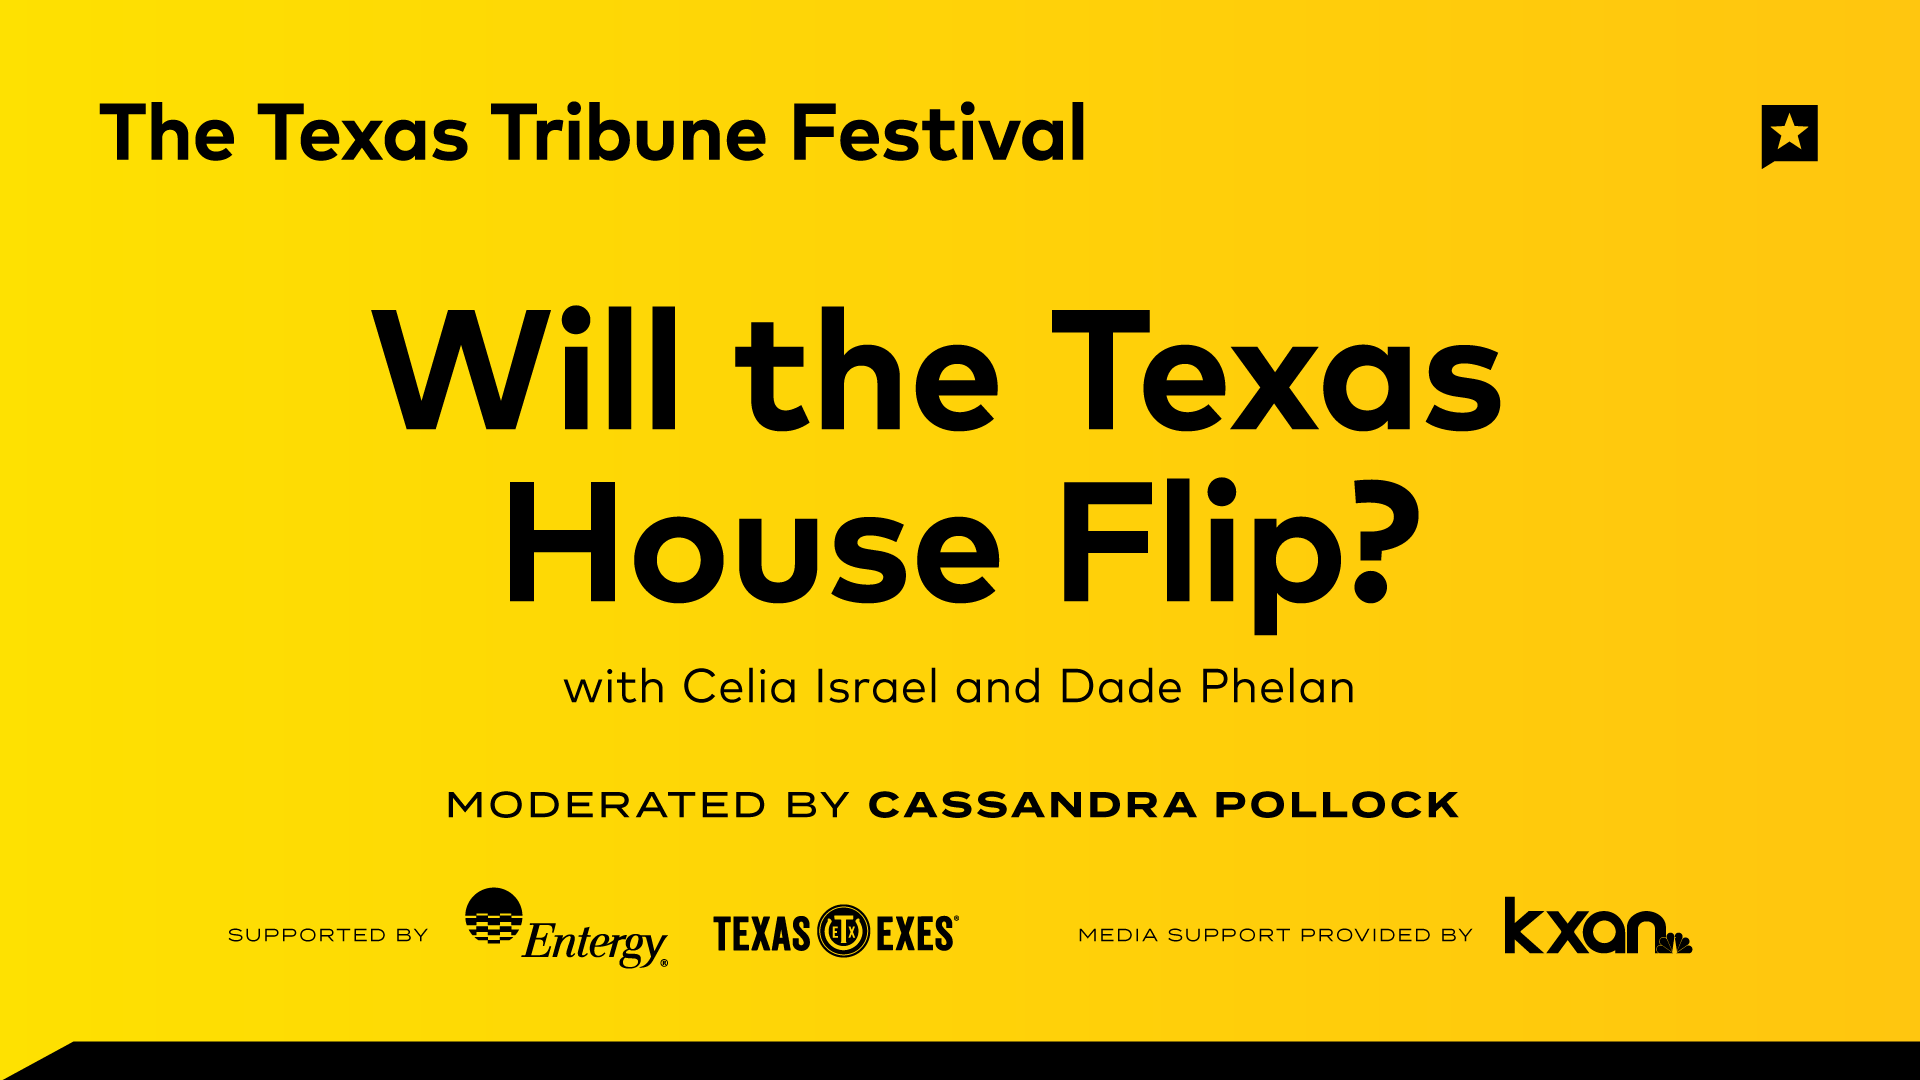 Will the Texas House Flip?